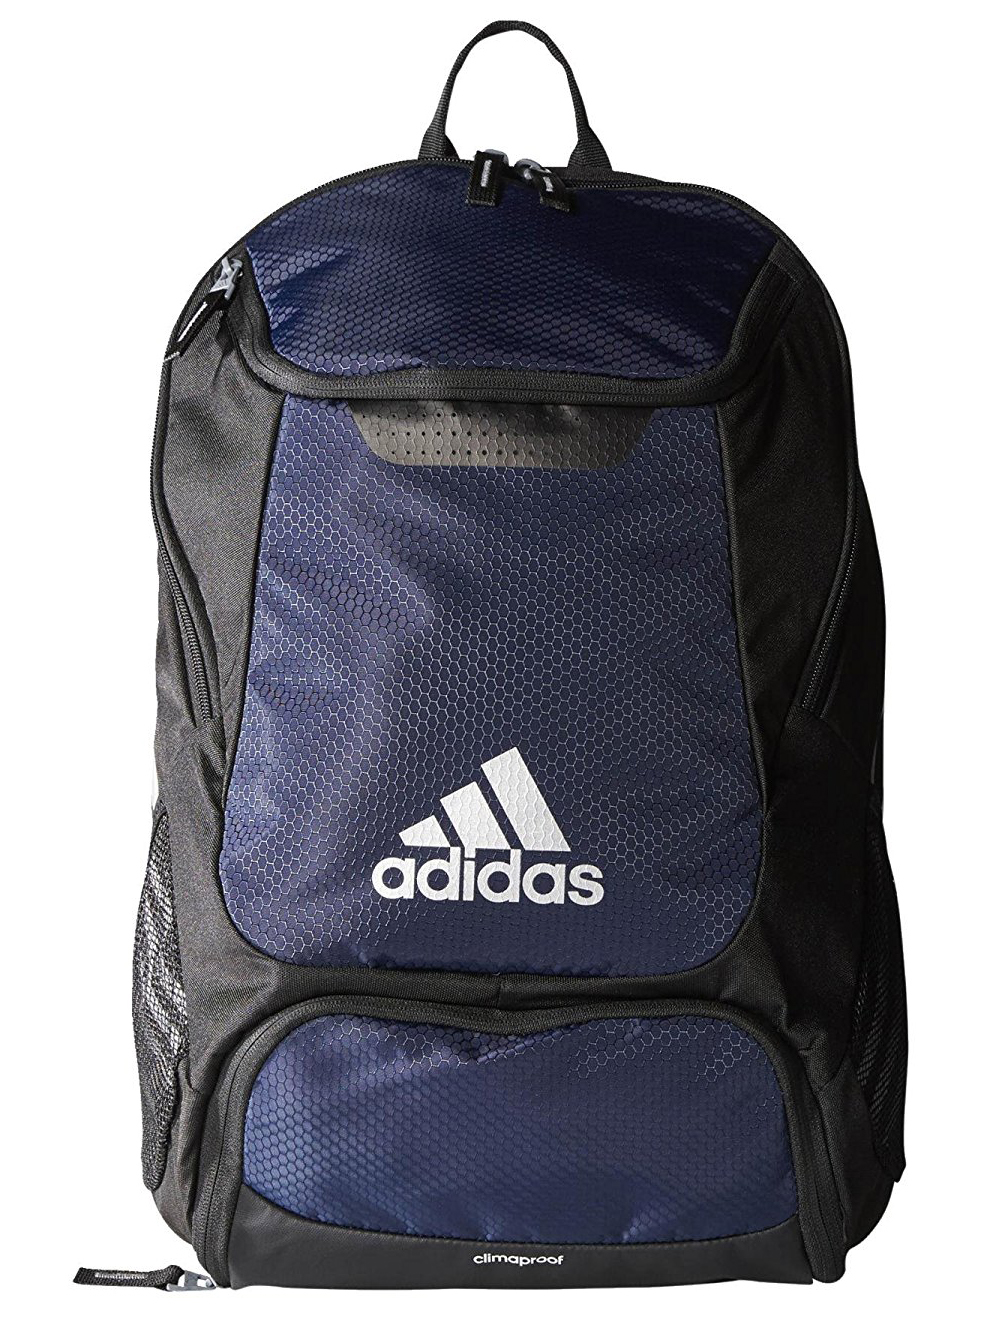 Backpack Väska Stadium : Adidas stadium team backpack one size